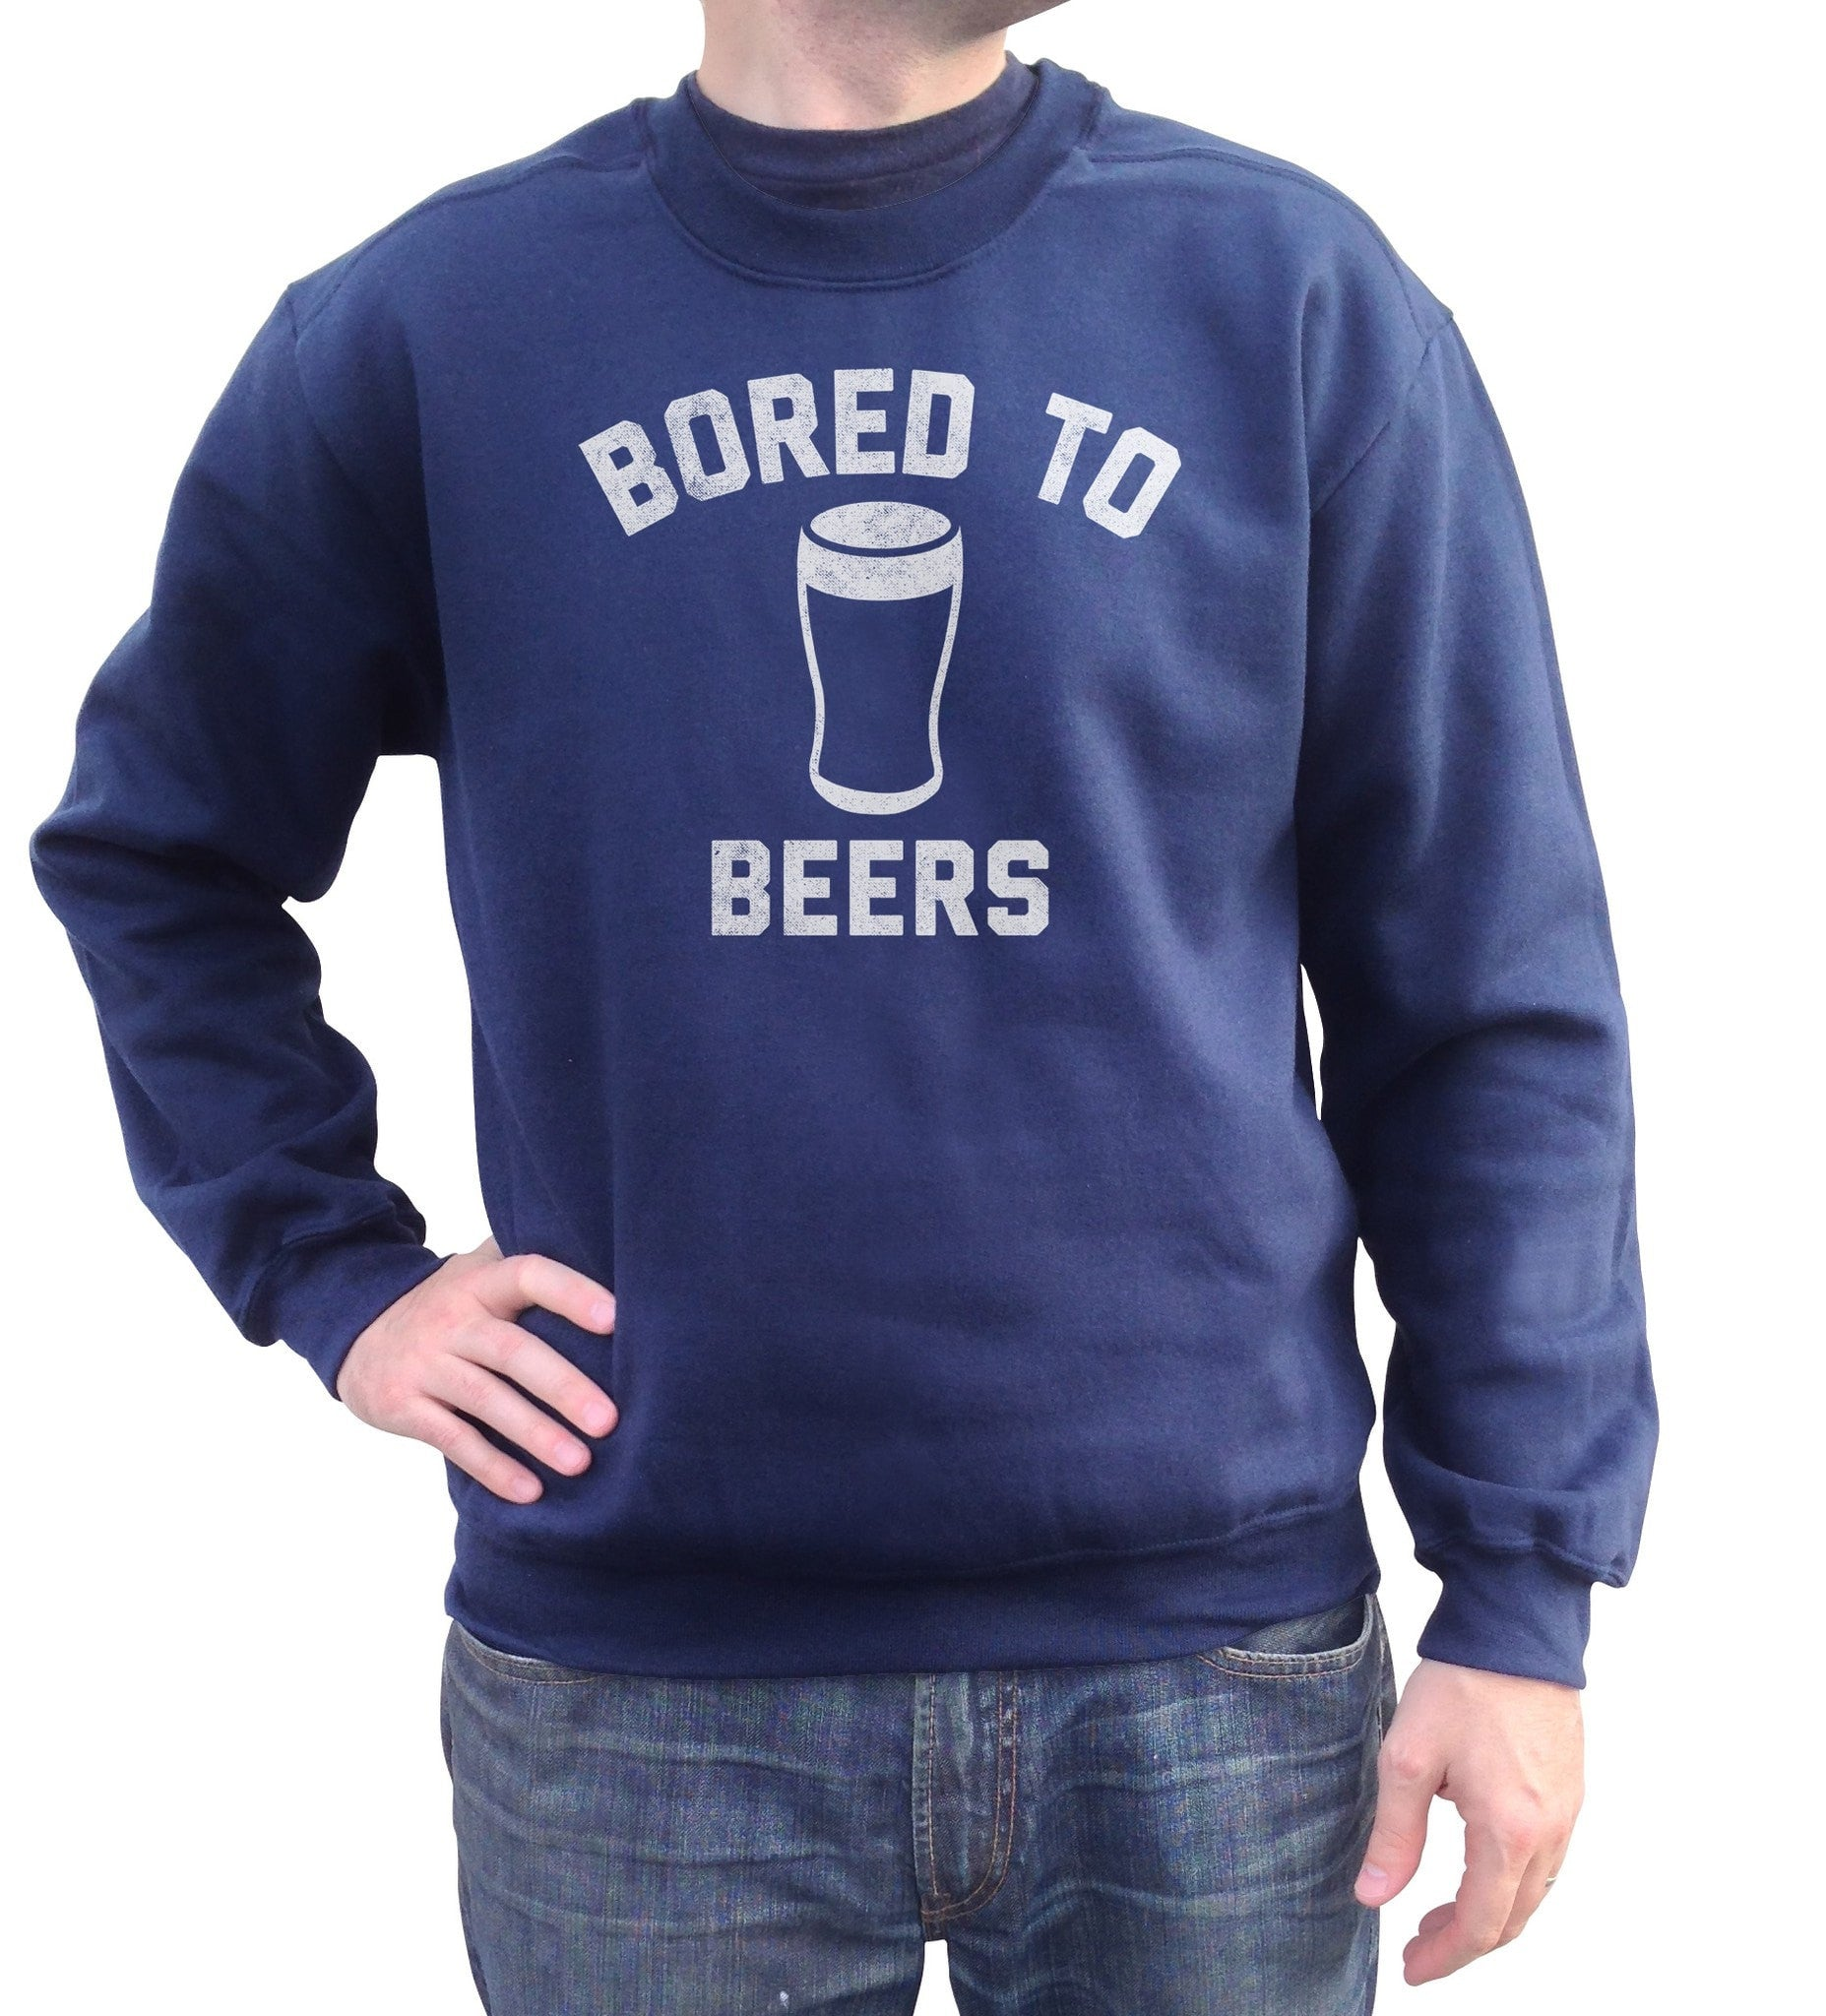 Unisex Bored to Beers Sweatshirt - Funny Drinking Shirt